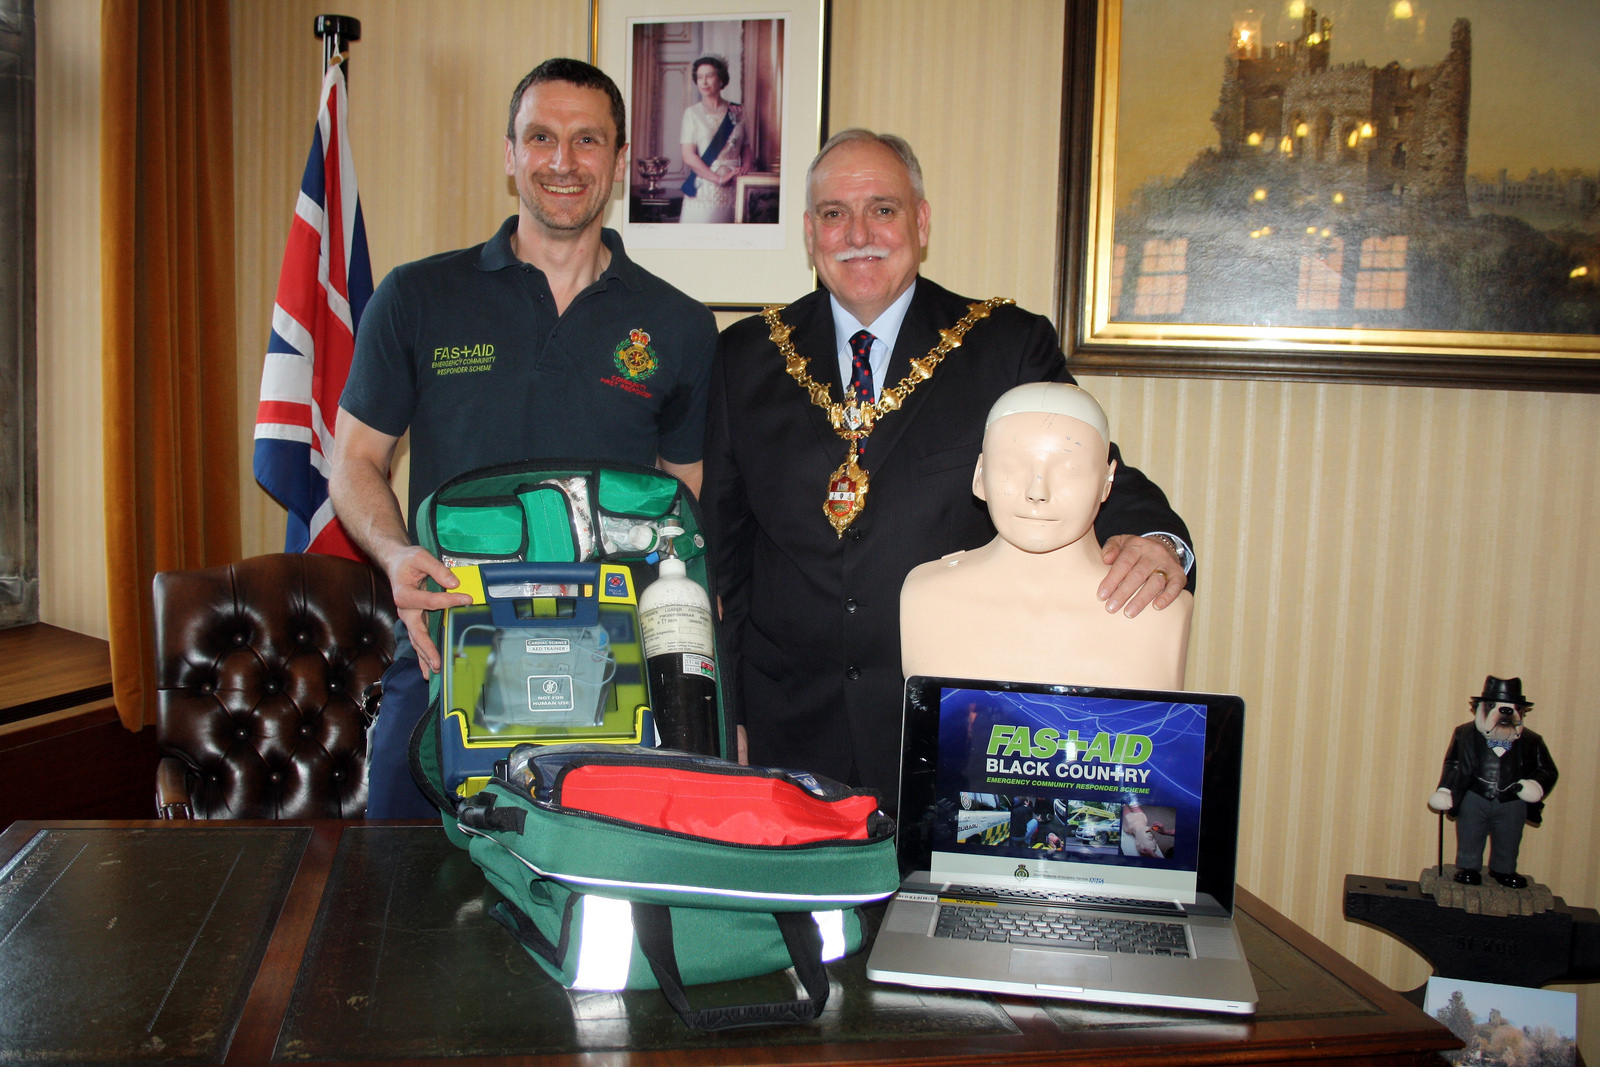 Paul Grove from FastAid poses with lifesaving equipment and teaching equipment with the Mayor of Dudley cllr Alan Finch.